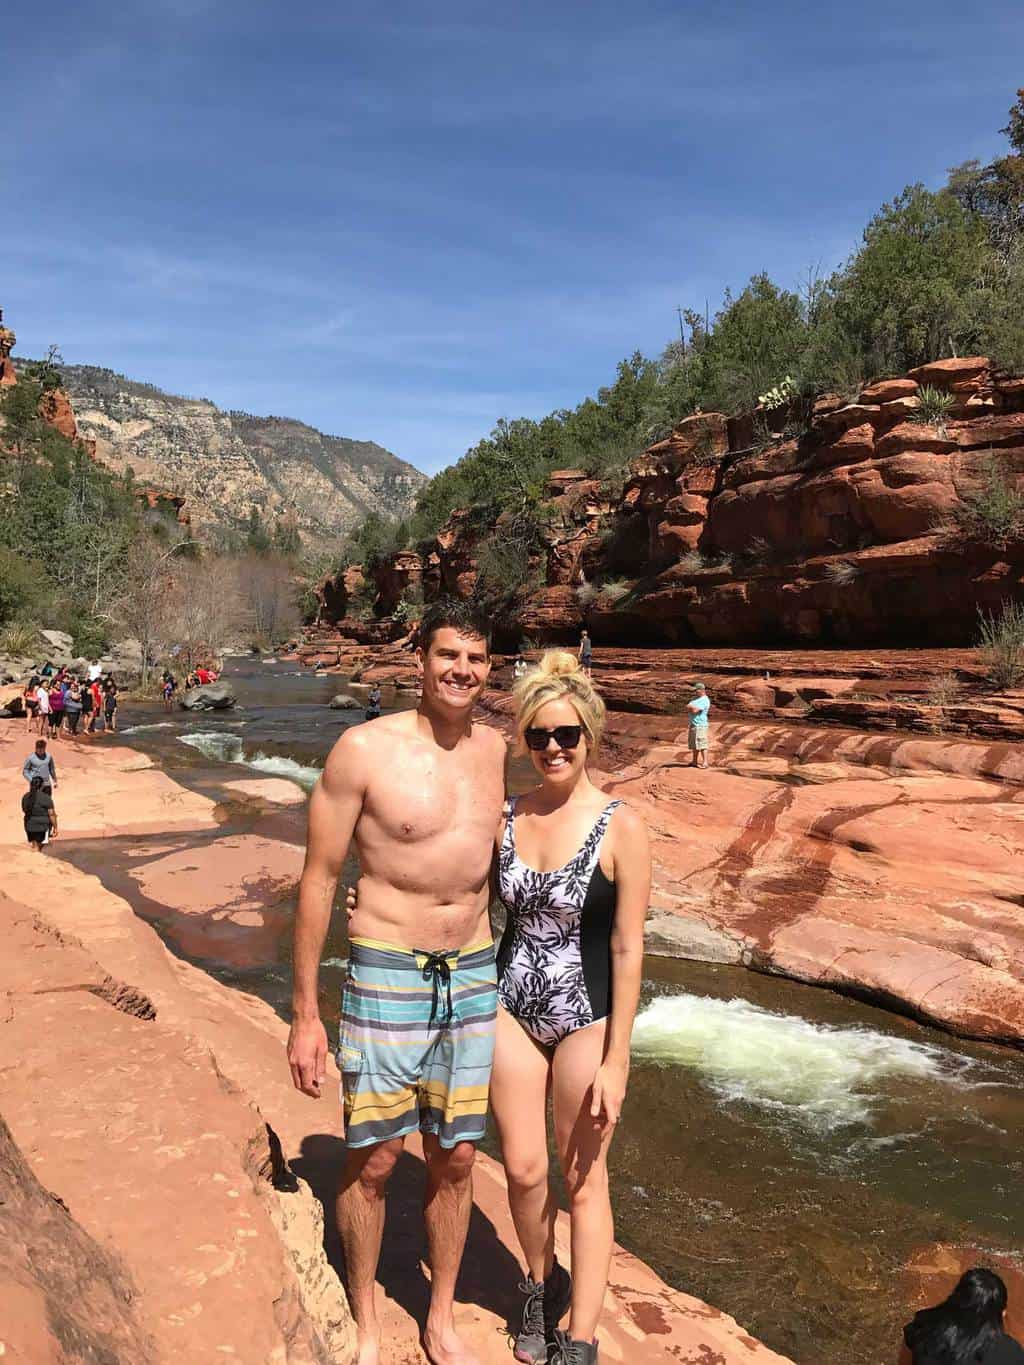 sedona-slide-rock-park-hiking-trail-1